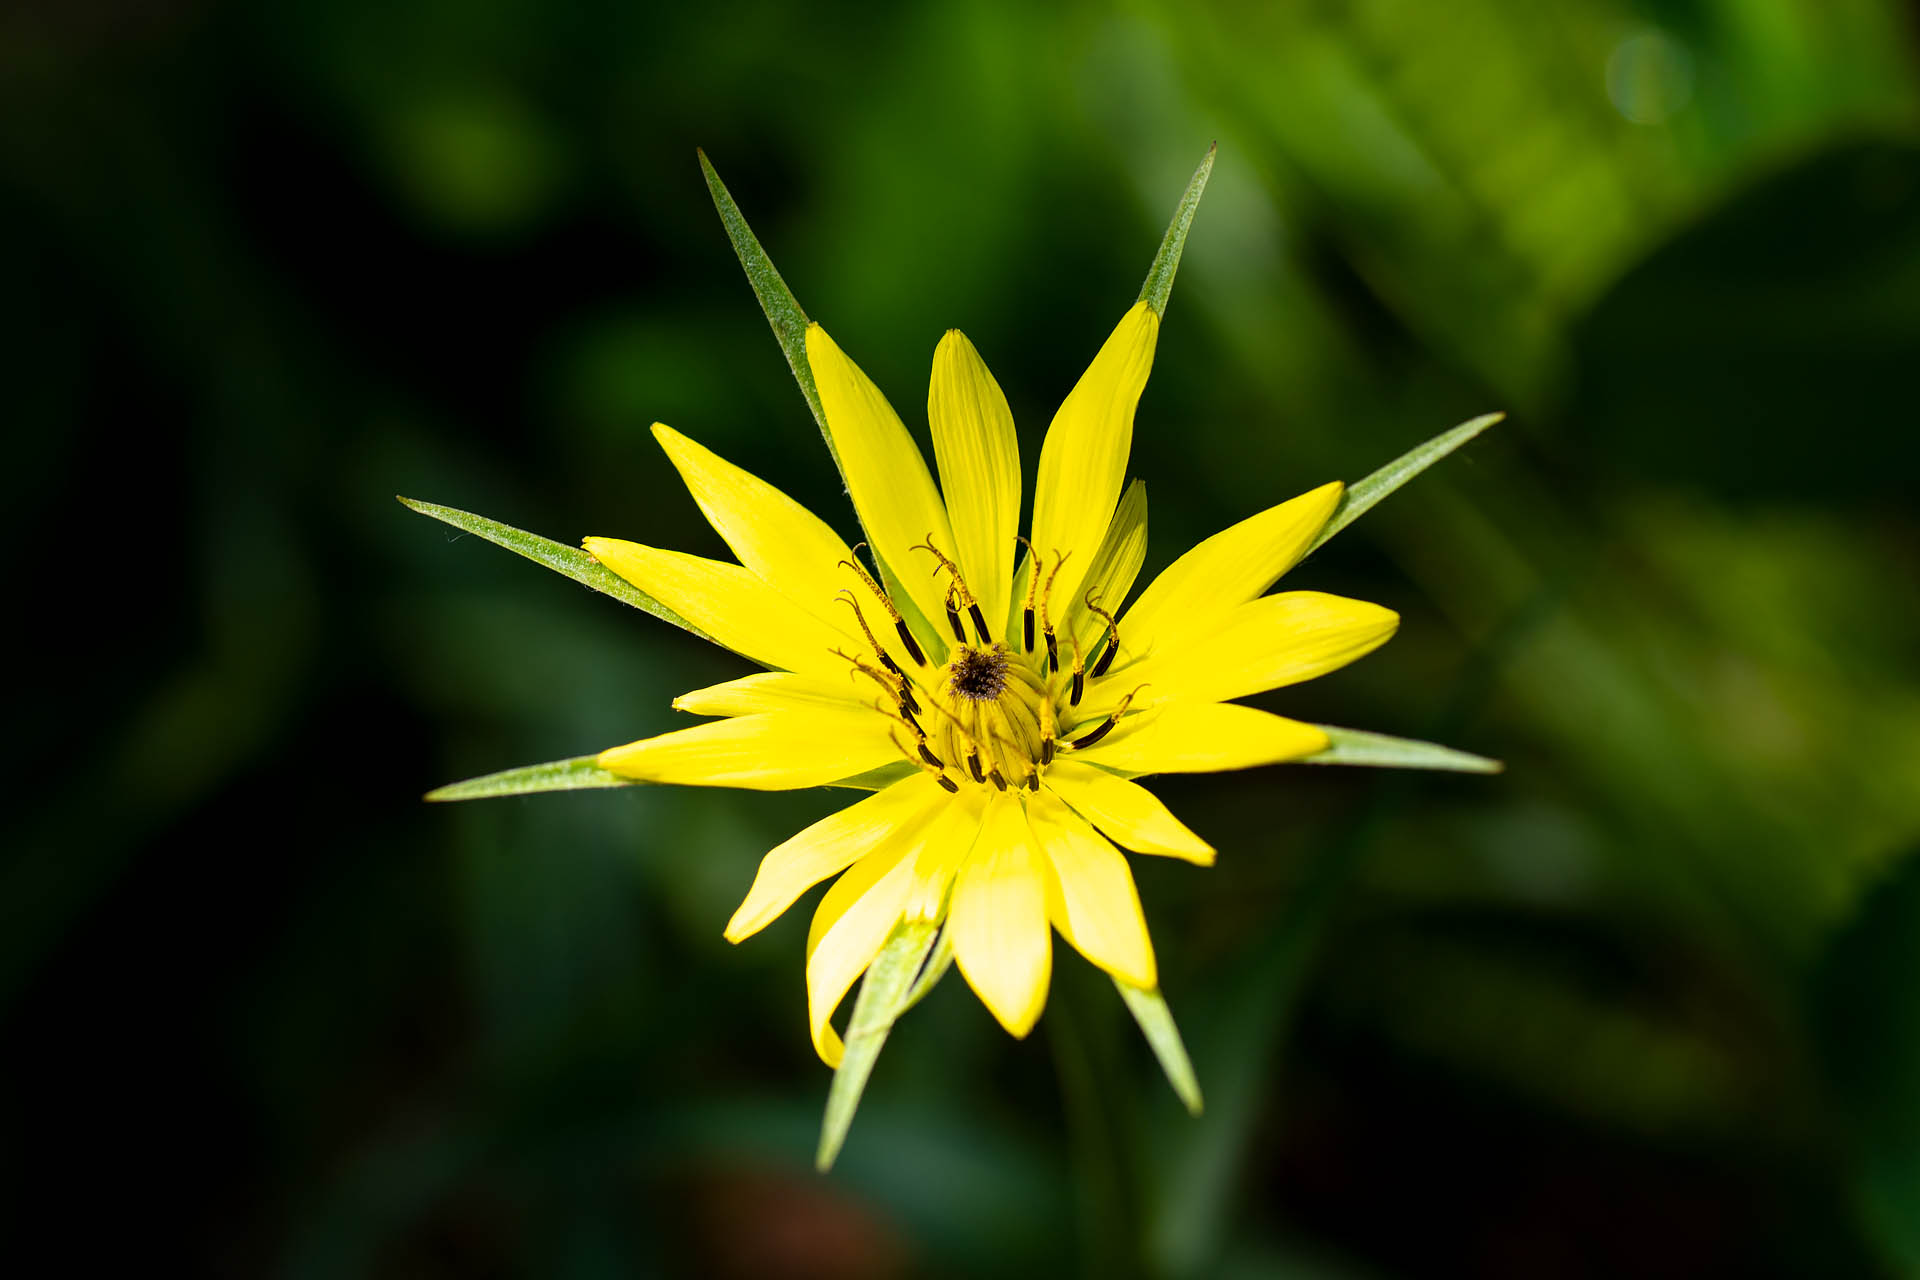 Yellow salsify (meadow goat's beard)